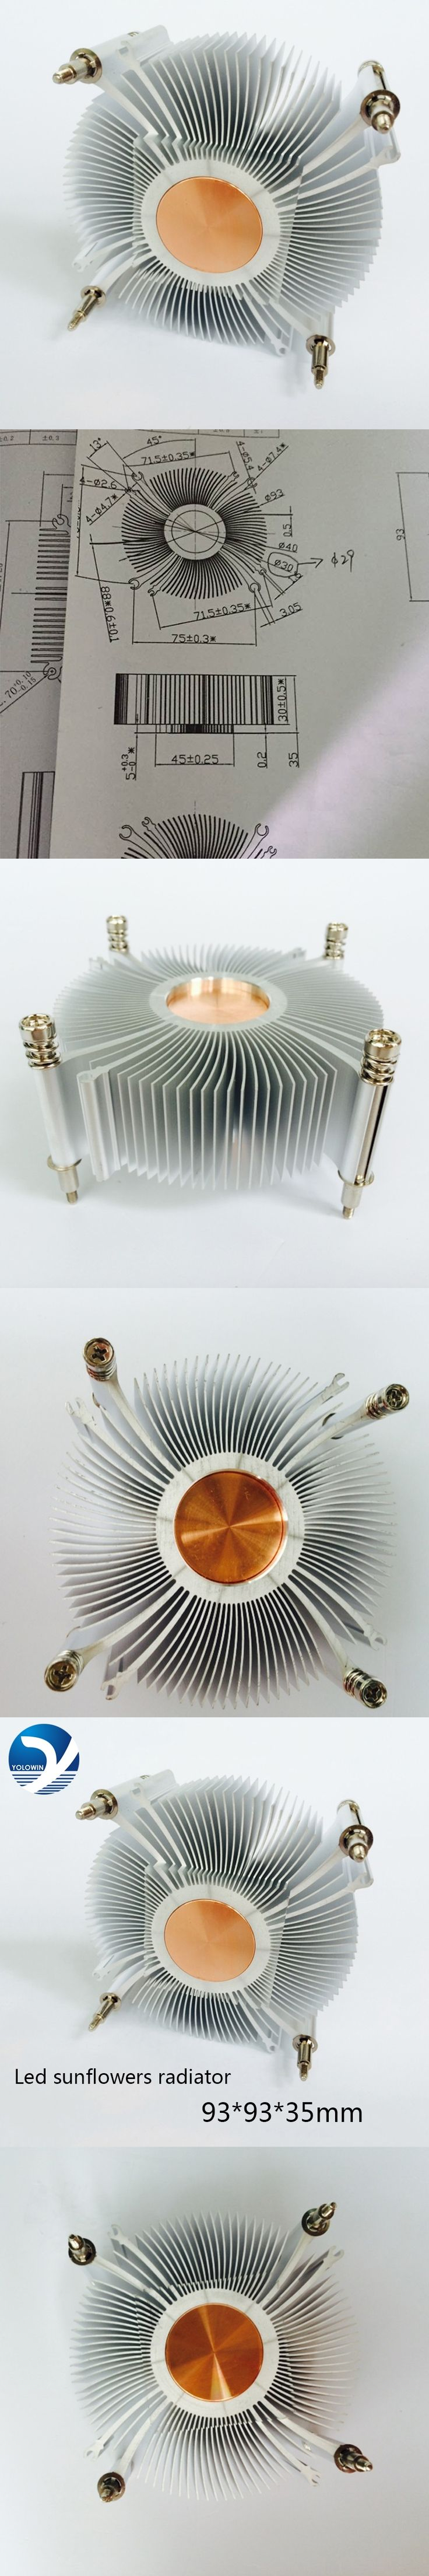 CPU cooler radiator cooling heatsink for Intel LGA1155 / 1156 93*93*35mm Aluminum radiator fan cooling Computer heatsink YL-0047